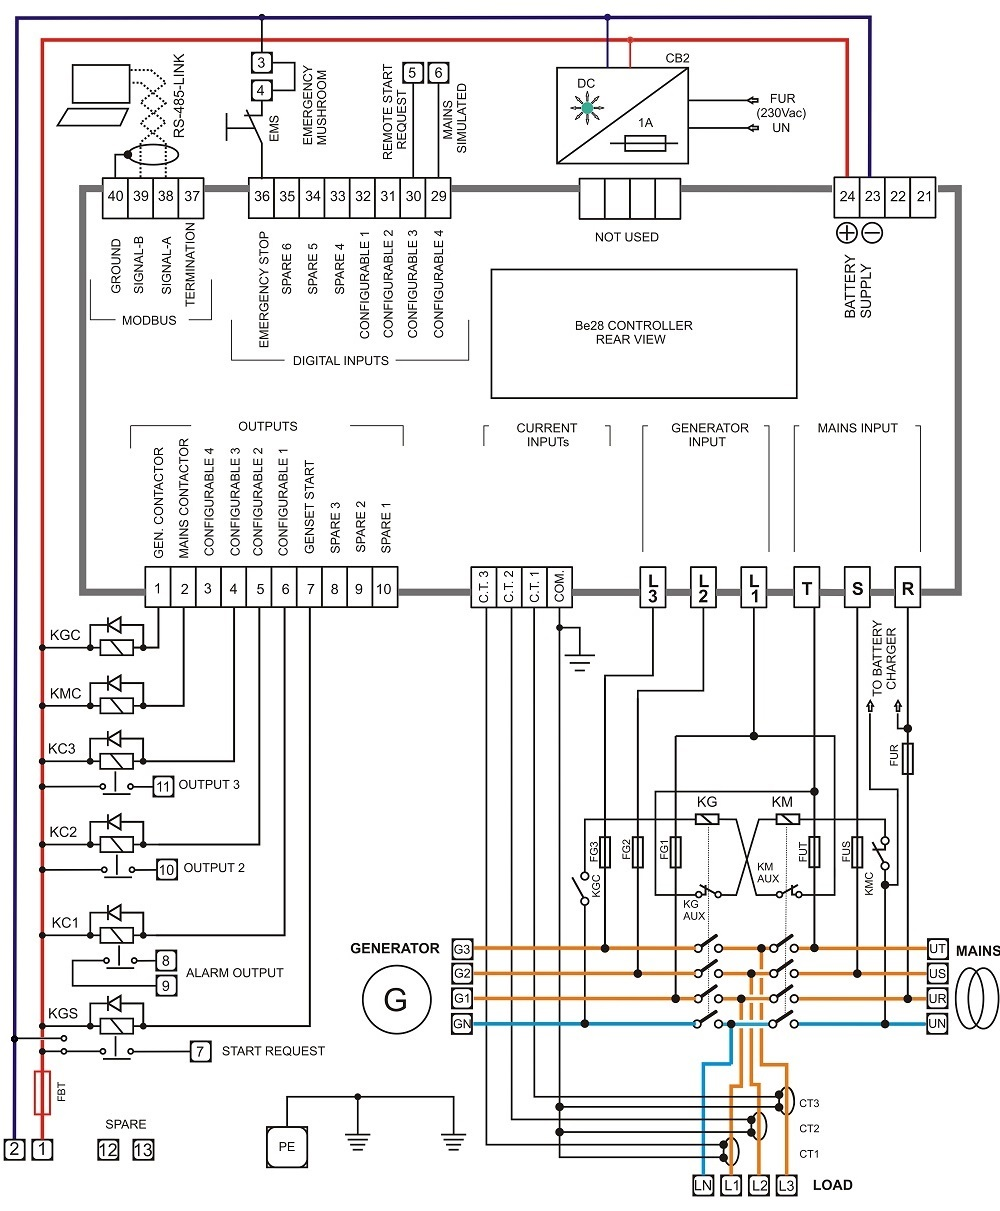 60kVA ATS PANEL WIRING DIAGRAM ats wiring drawing ats wire diagram 3 \u2022 wiring diagrams j squared co 4-pole transfer switch wiring diagram at gsmportal.co